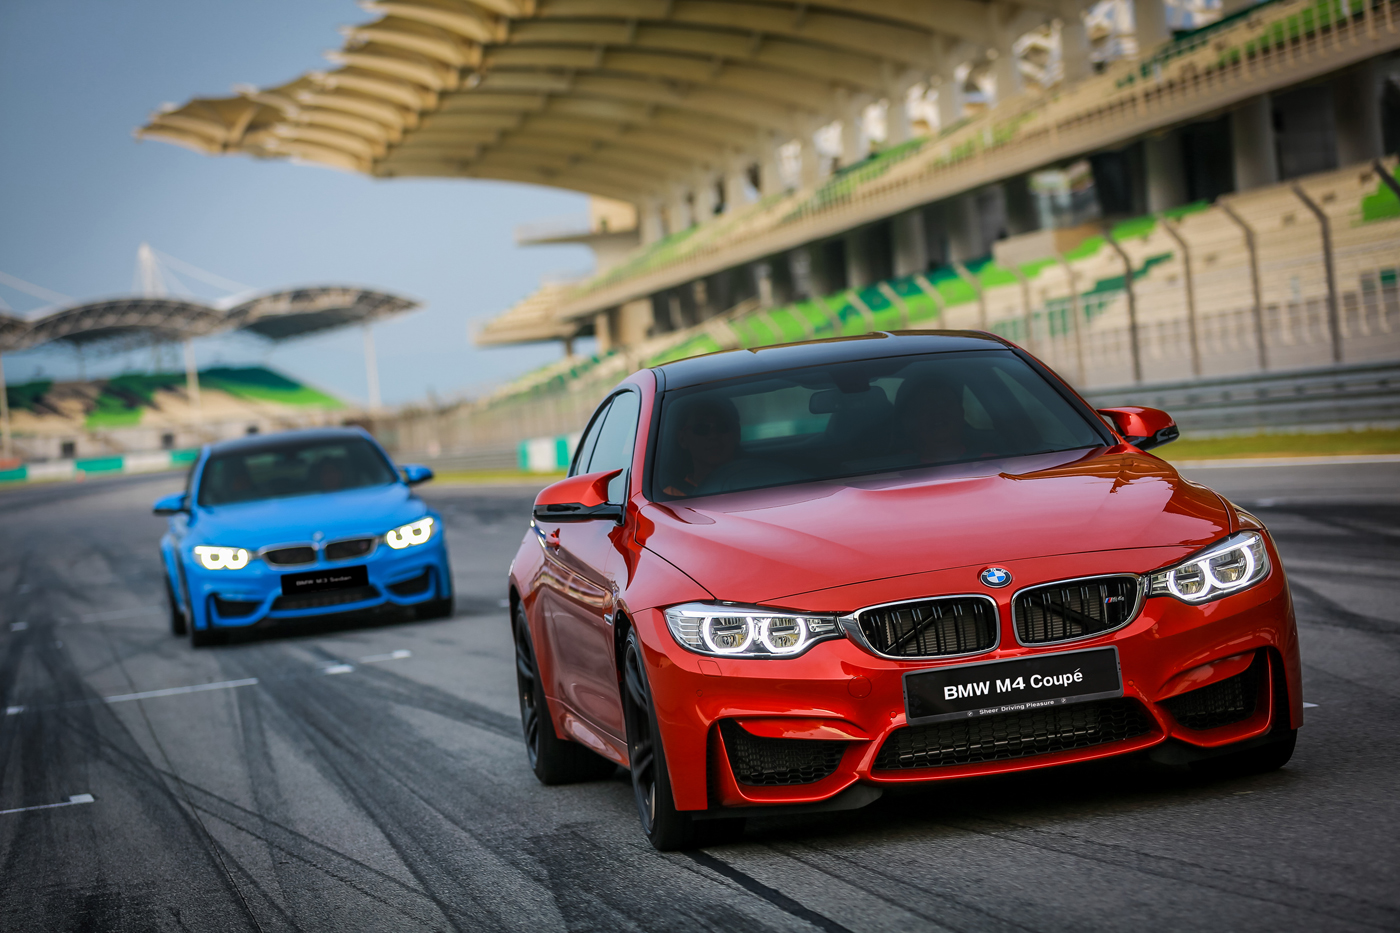 2014 Bmw M3 Sedan M4 Coupe Now In Malaysia Price From Rm739k